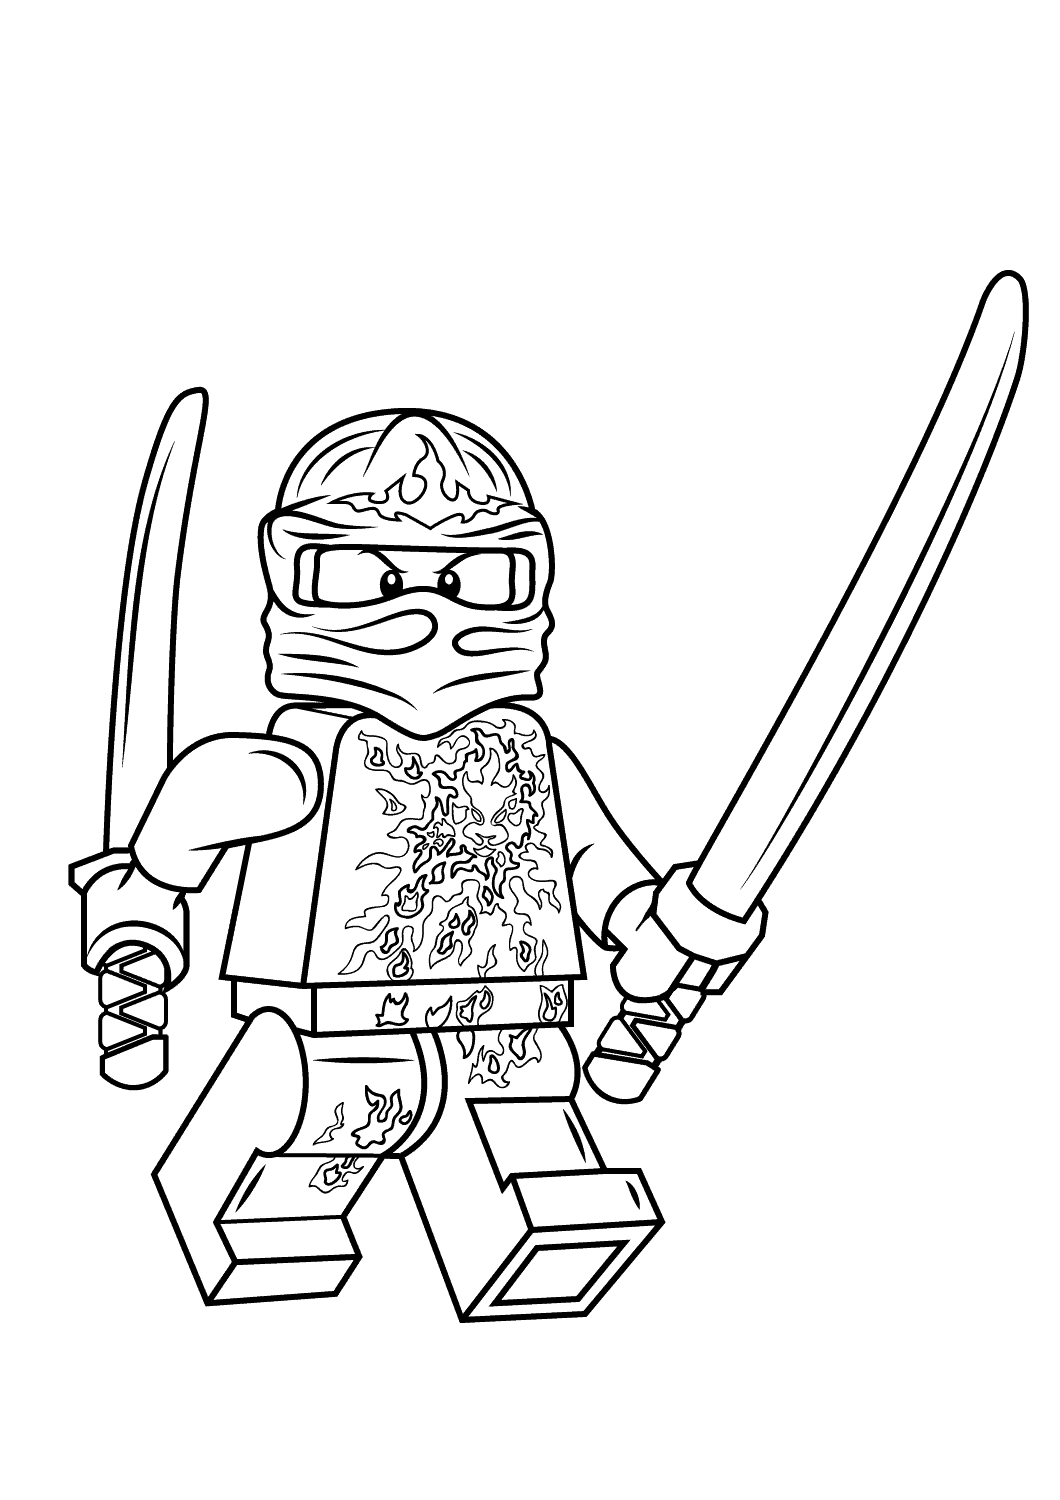 Kai from Ninjago holds Golden swords on his hands Coloring Pages